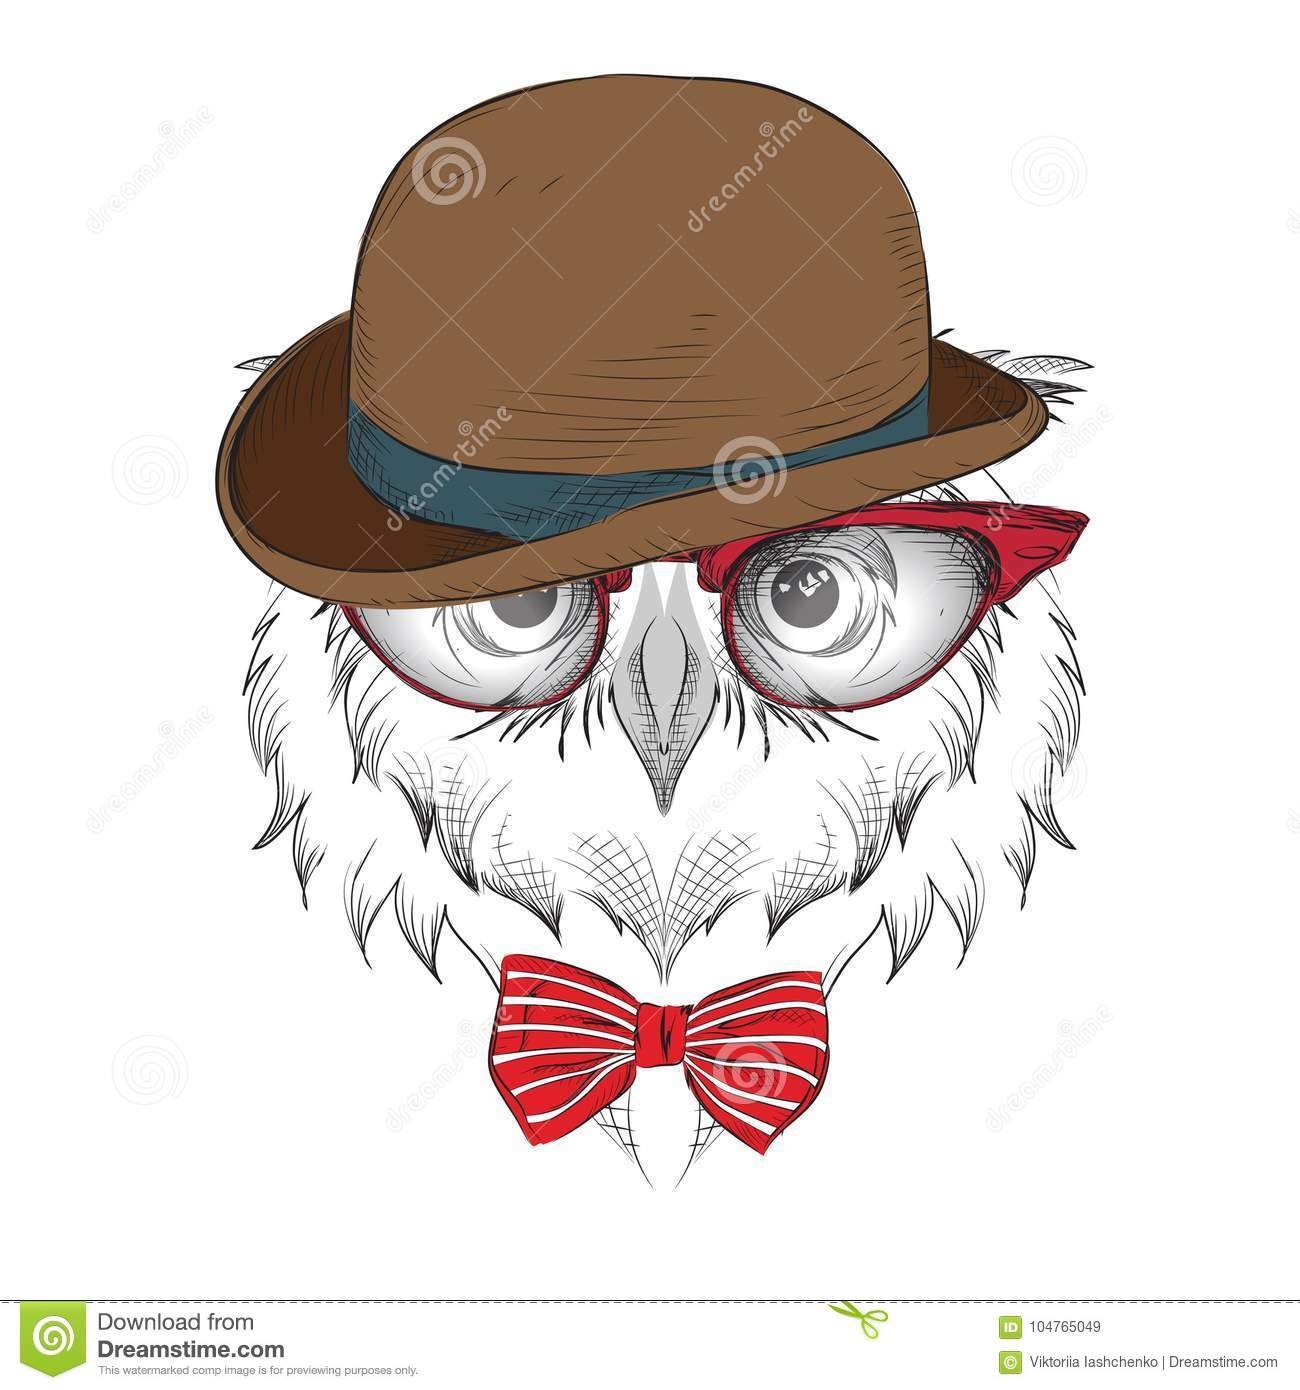 5a638ebe3a54f Image Portrait owl in the glasses and Hat.   african   indian   totem    tattoo design. Use for print